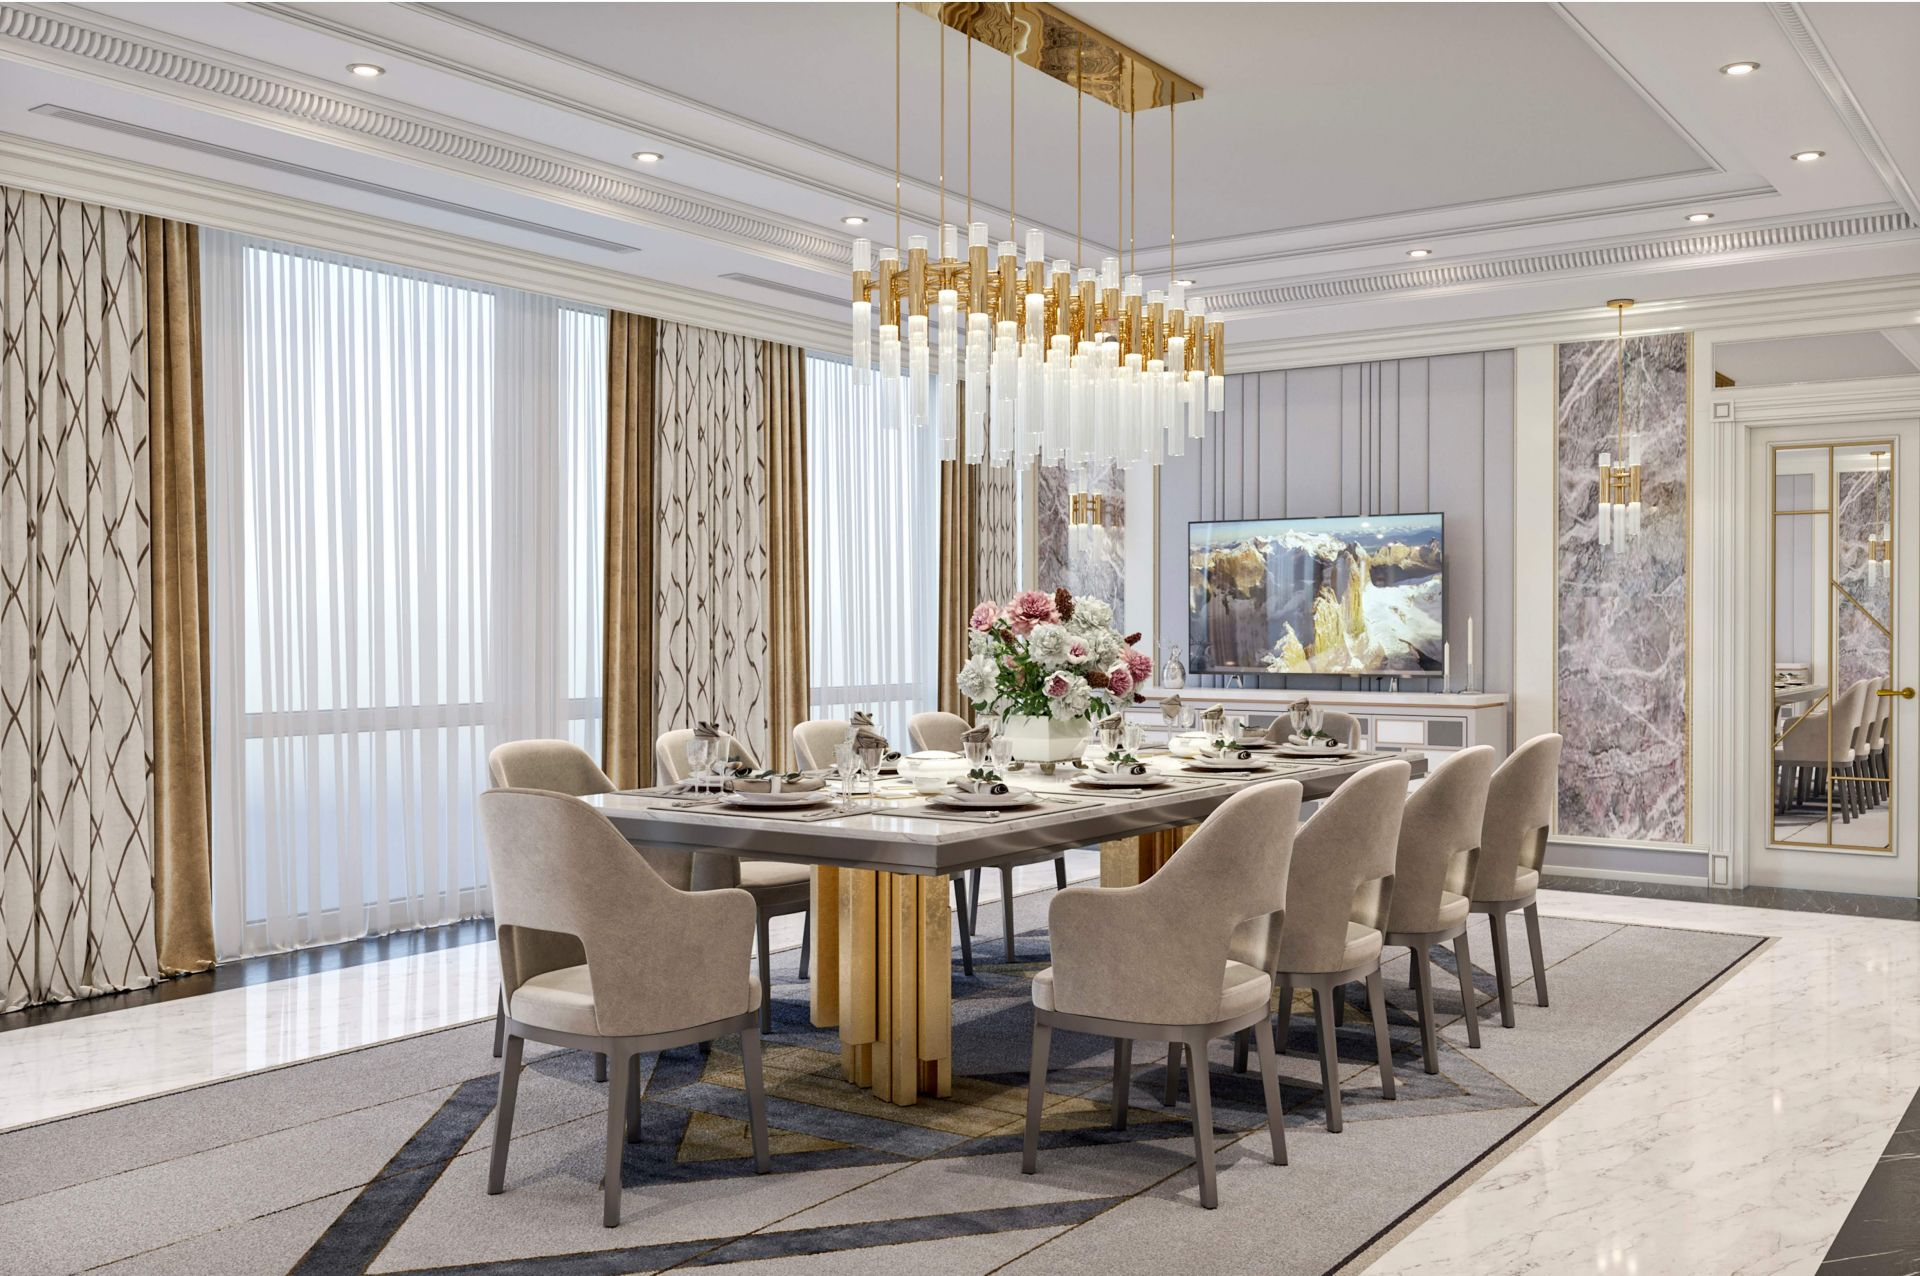 Living-dining room in the Hilton Hotel